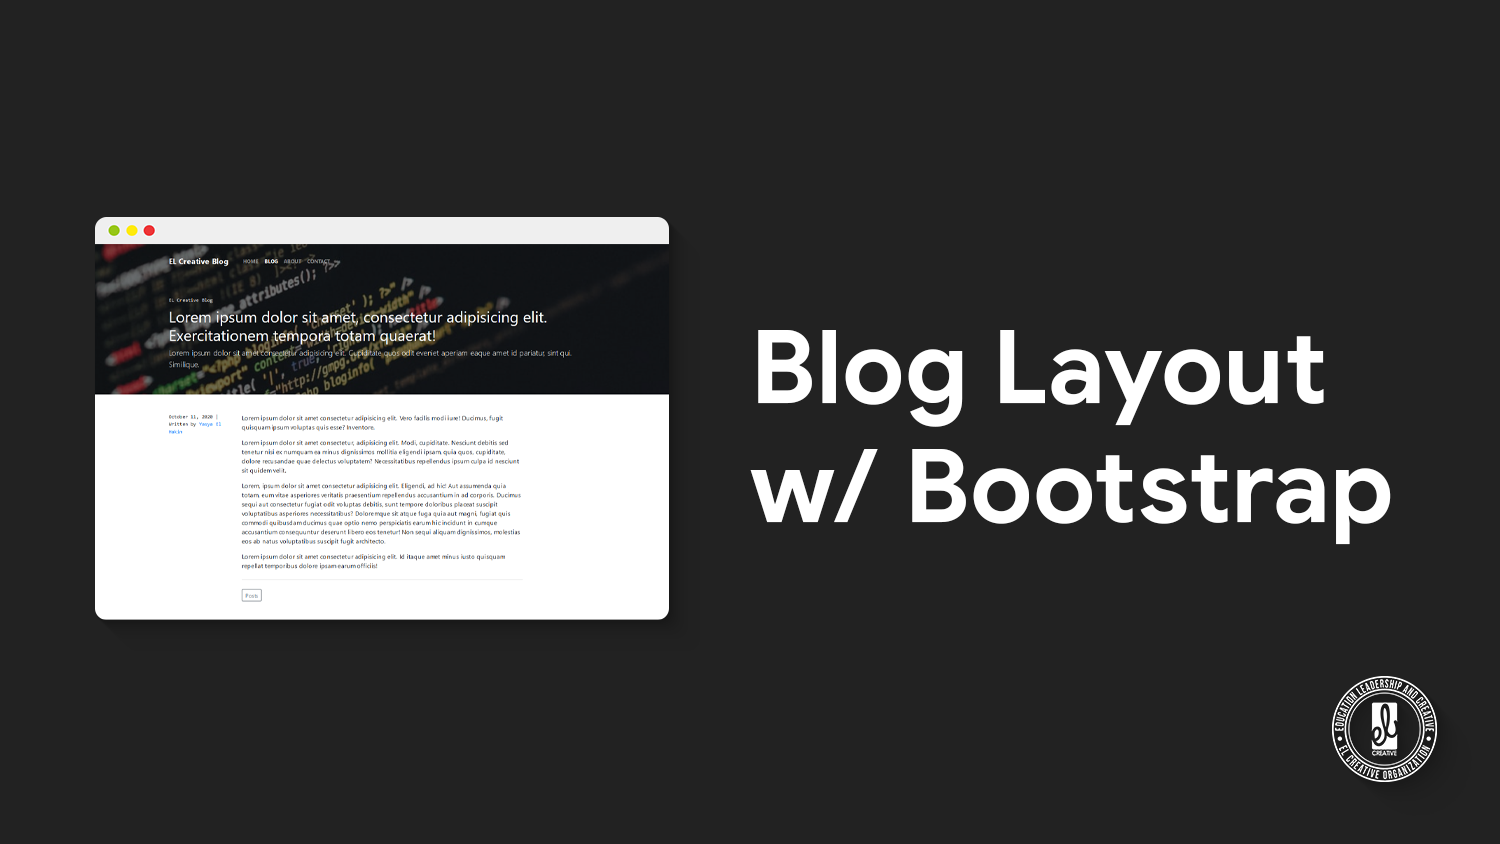 Blog Layout with Bootstrap